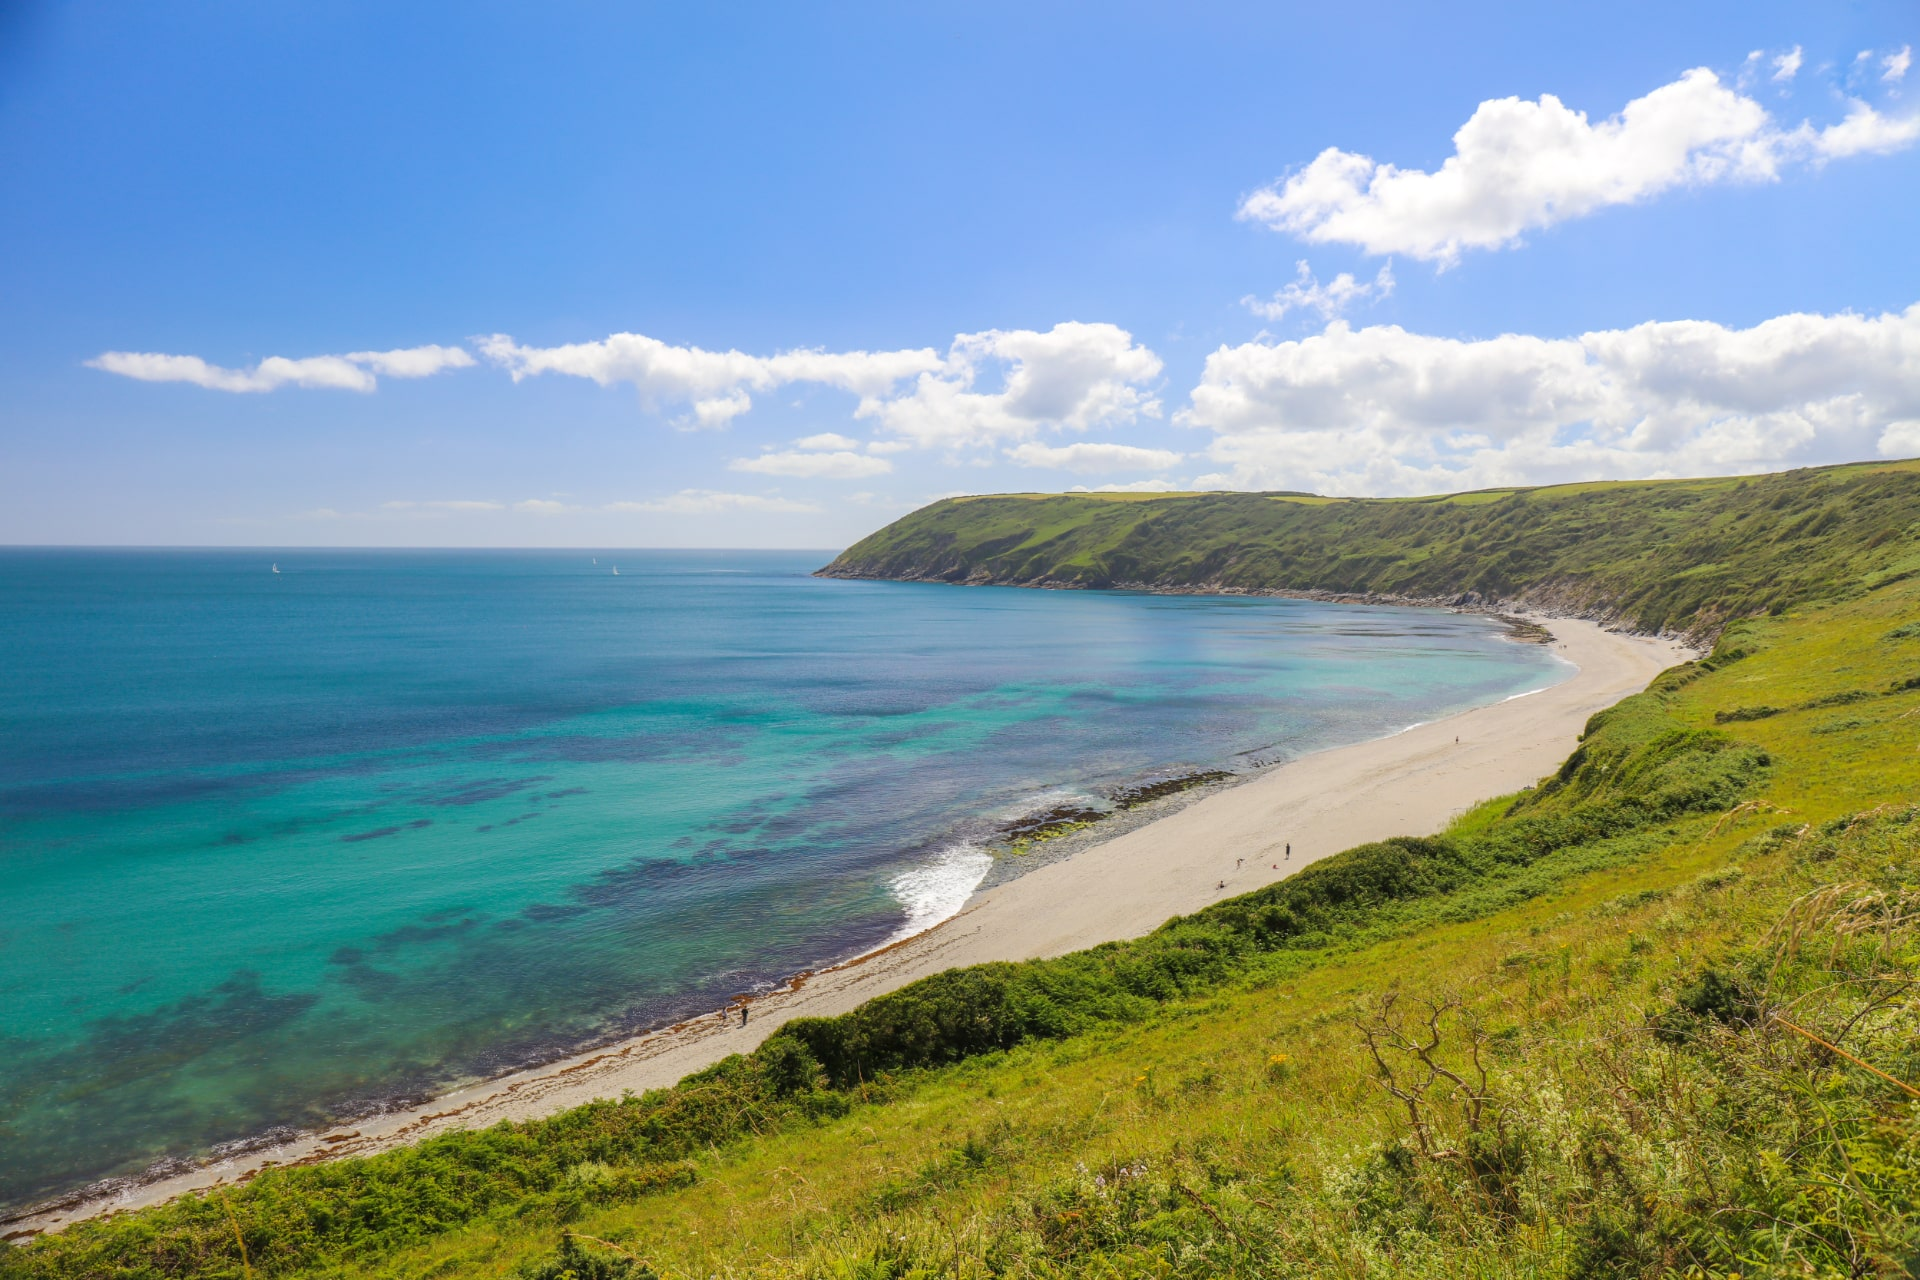 green-cliffs-leading-down-to-white-sandy-beach-and-turquoise-sea-roseland-peninsula